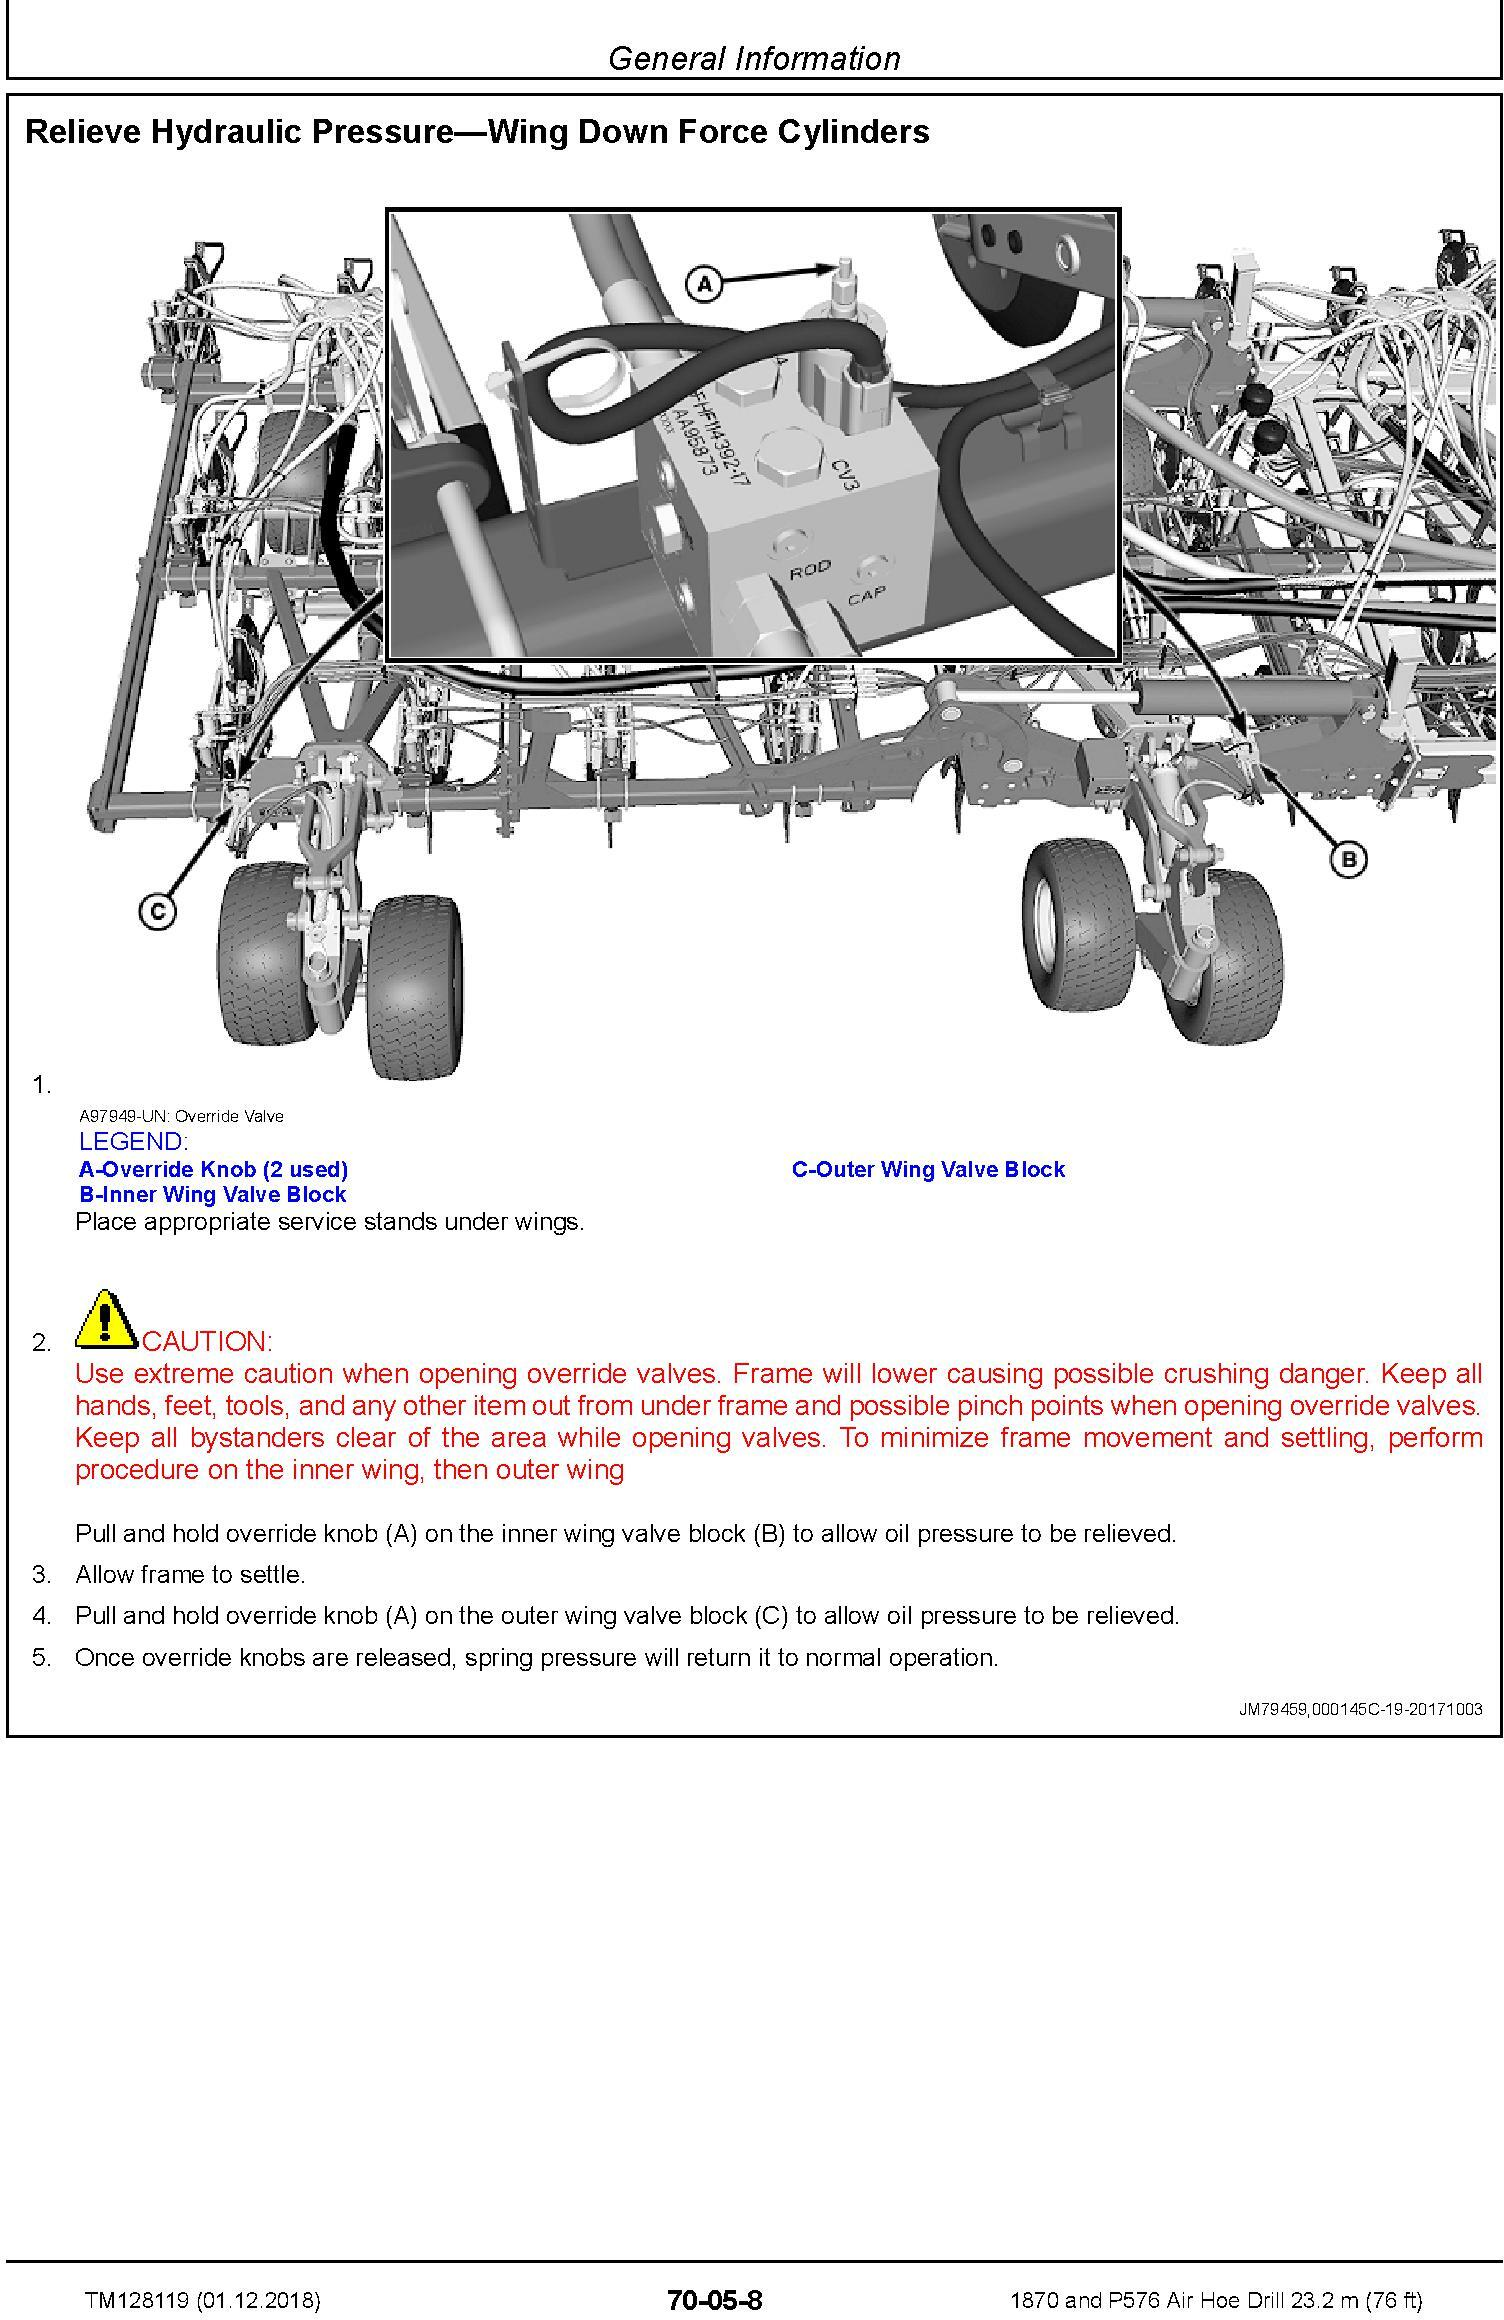 John Deere 1870 and P576 Air Hoe Drill 23.2 m (76 ft) Service Repair Technical Manual (TM128119) - 1